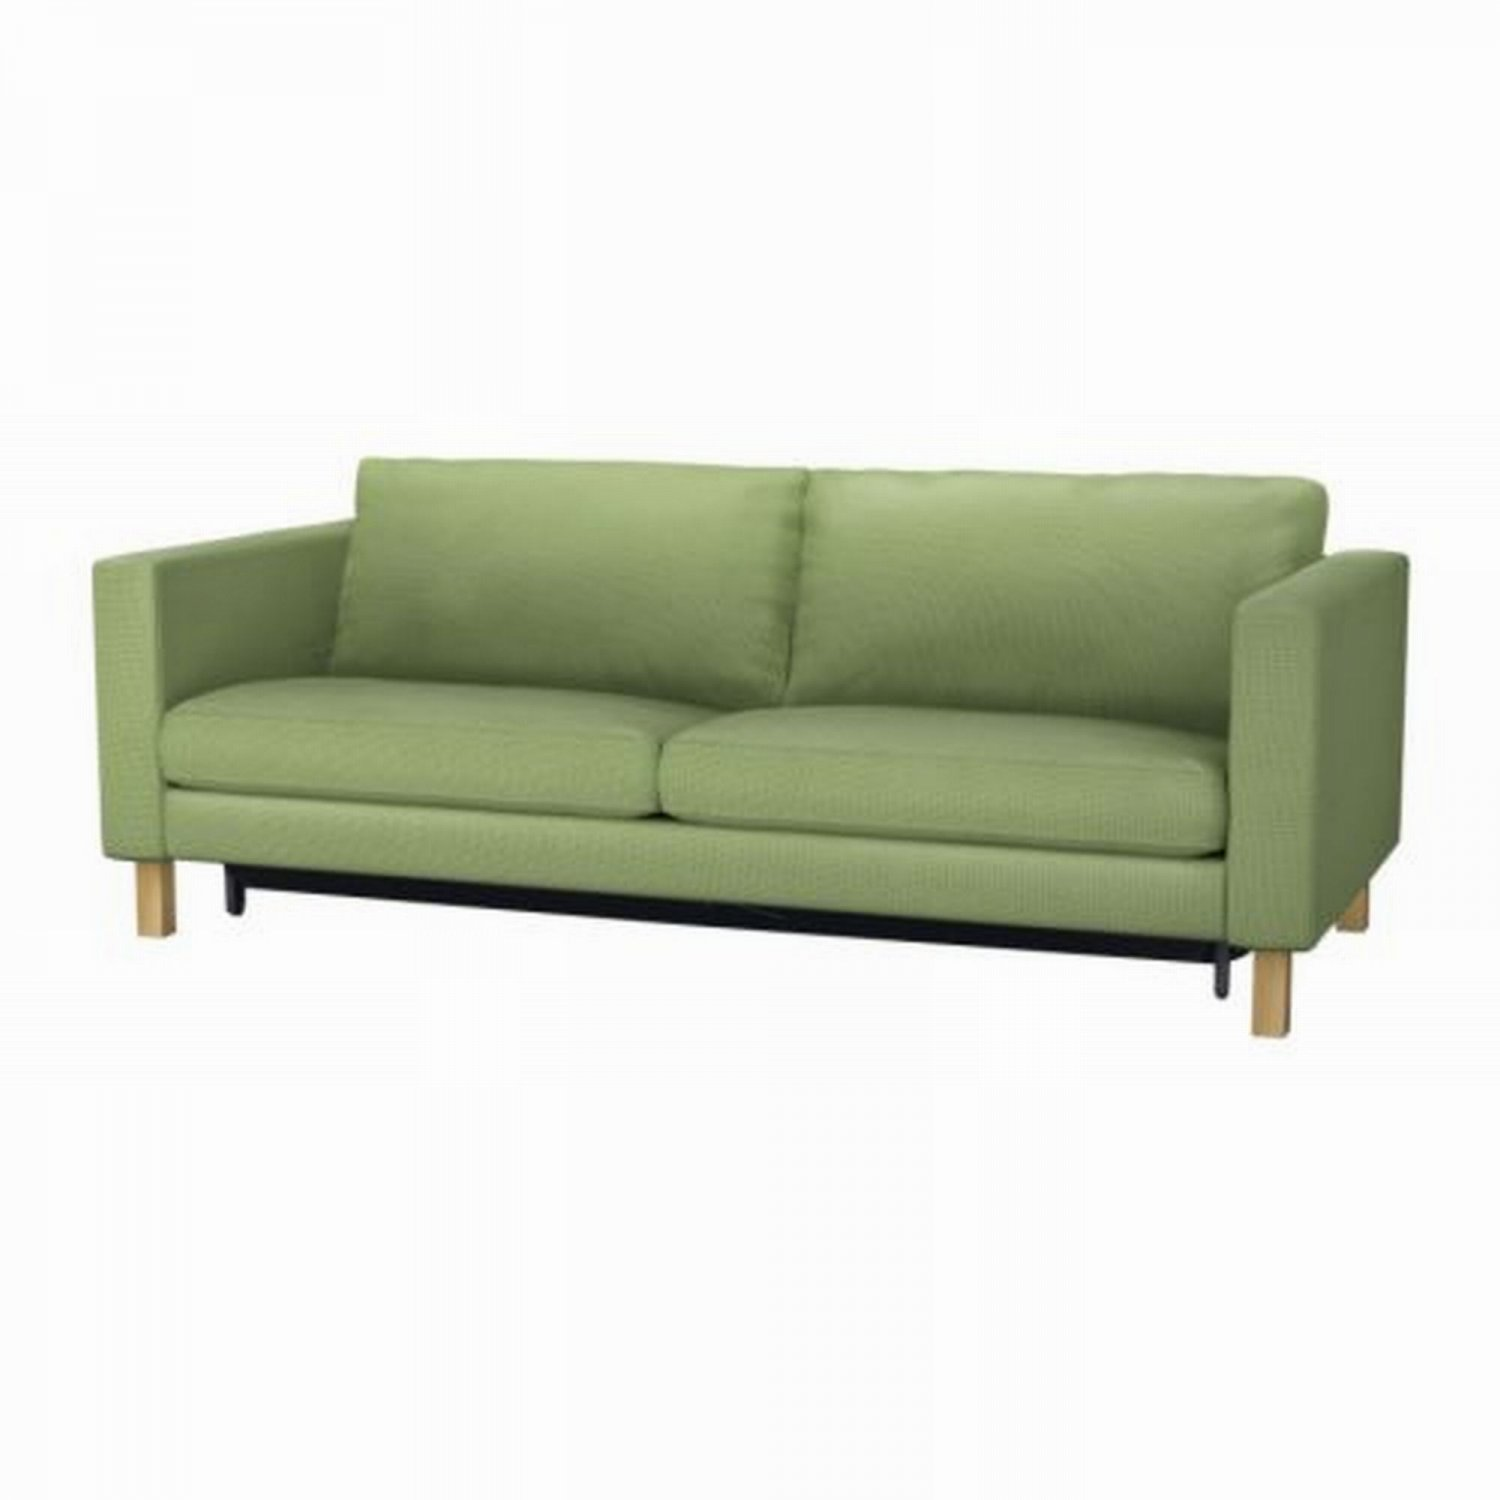 Ikea karlstad sofa bed sofabed slipcover cover korndal green Sleeper sofa covers